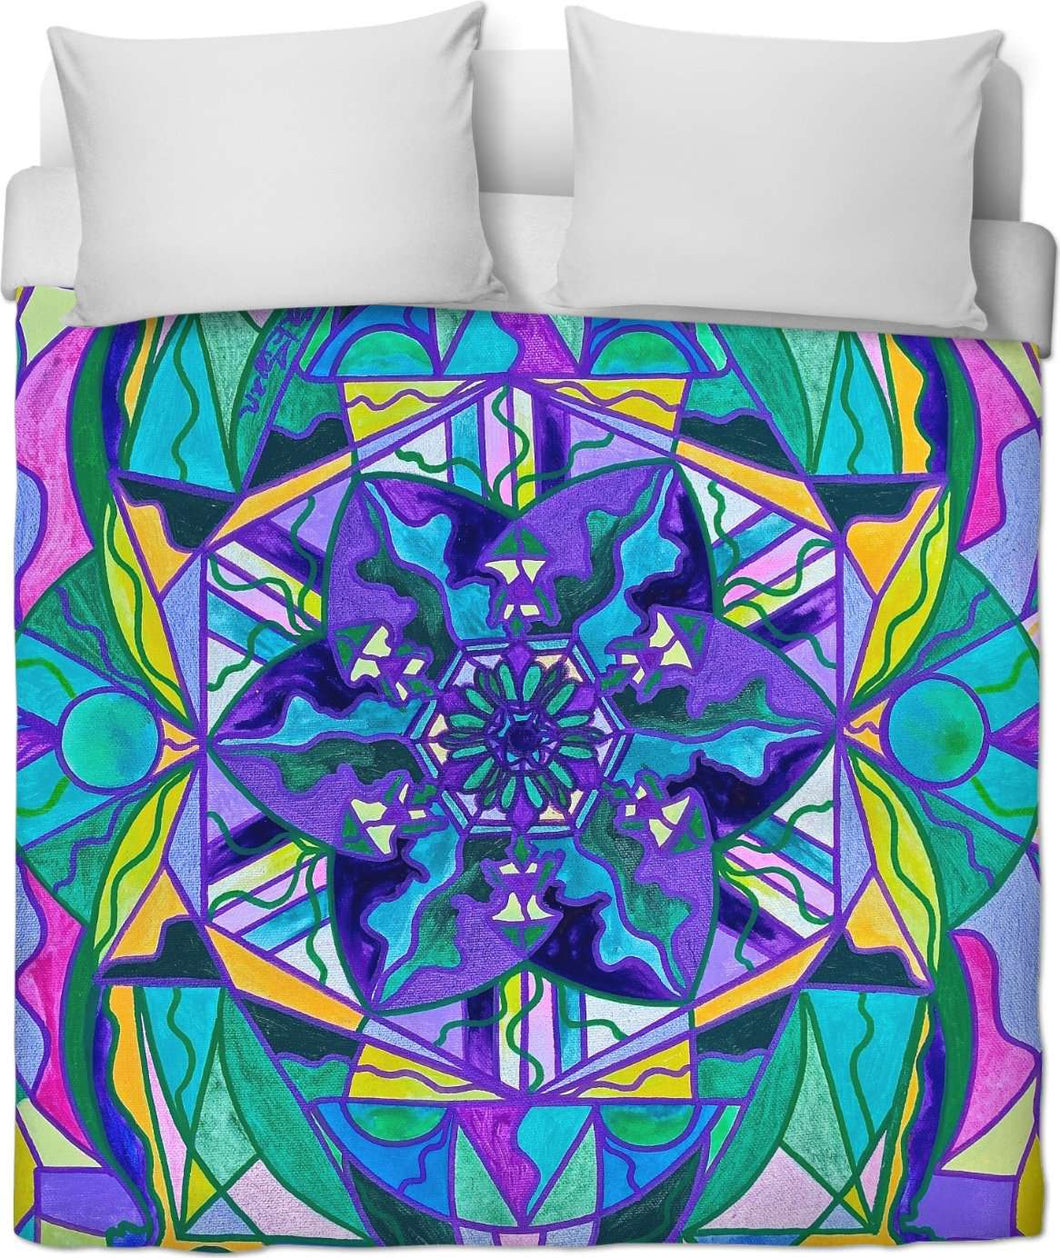 Hope - Duvet Cover